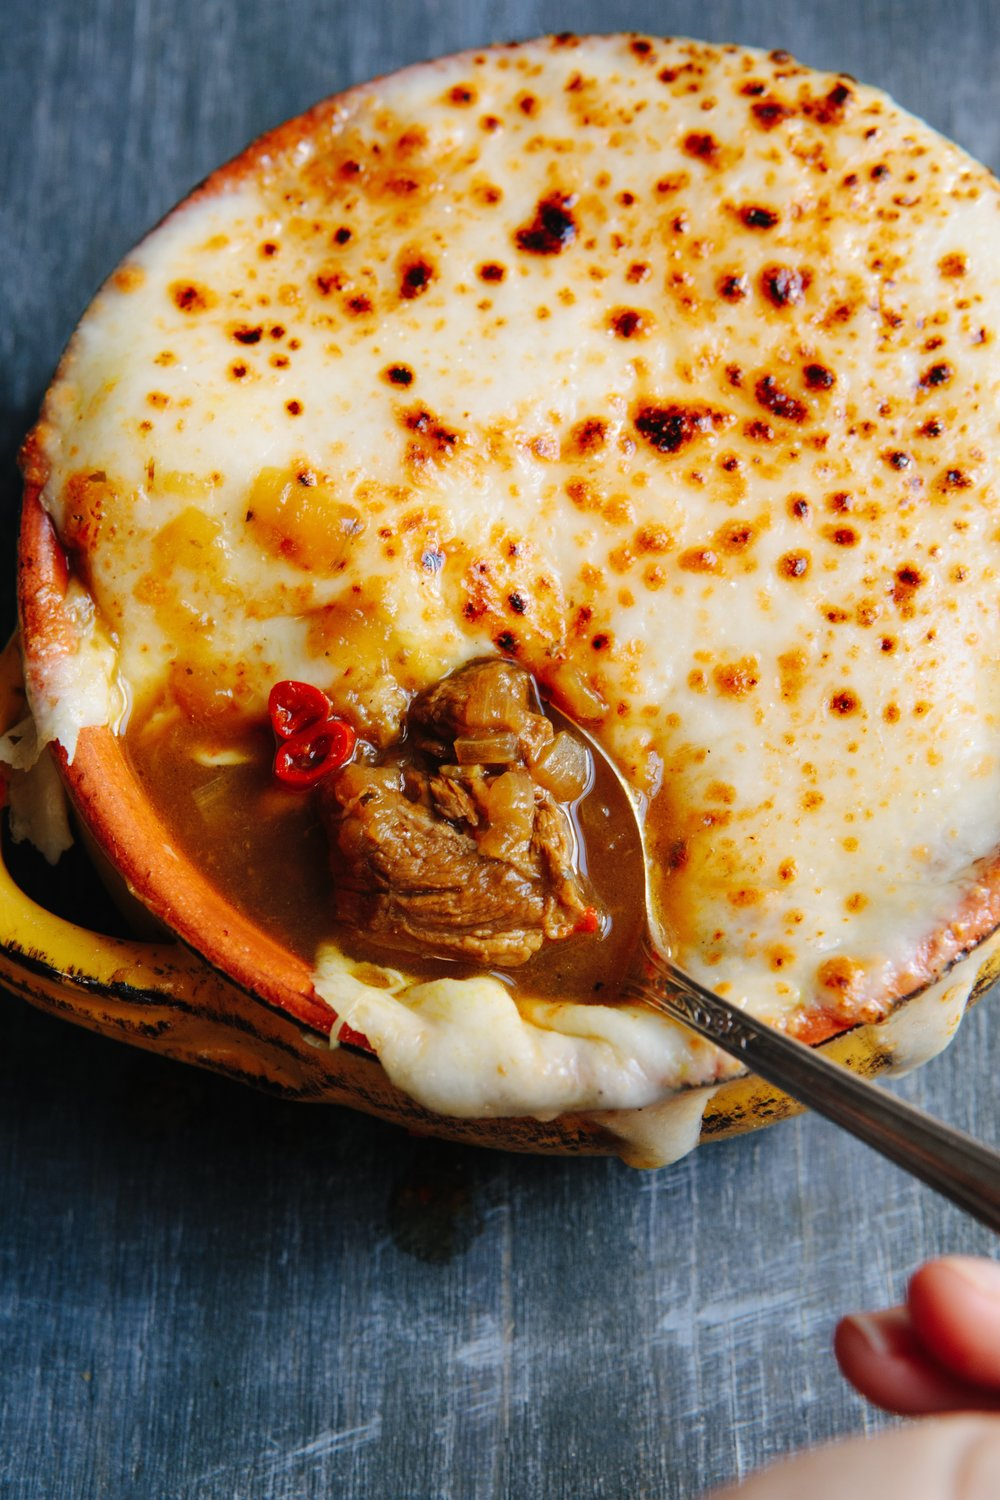 THE ART OF THE MASHUP_Lamb Vindaloo French Onion Soup_BRIAN SAMUELS PHOTOGRAPHY-9328.jpg